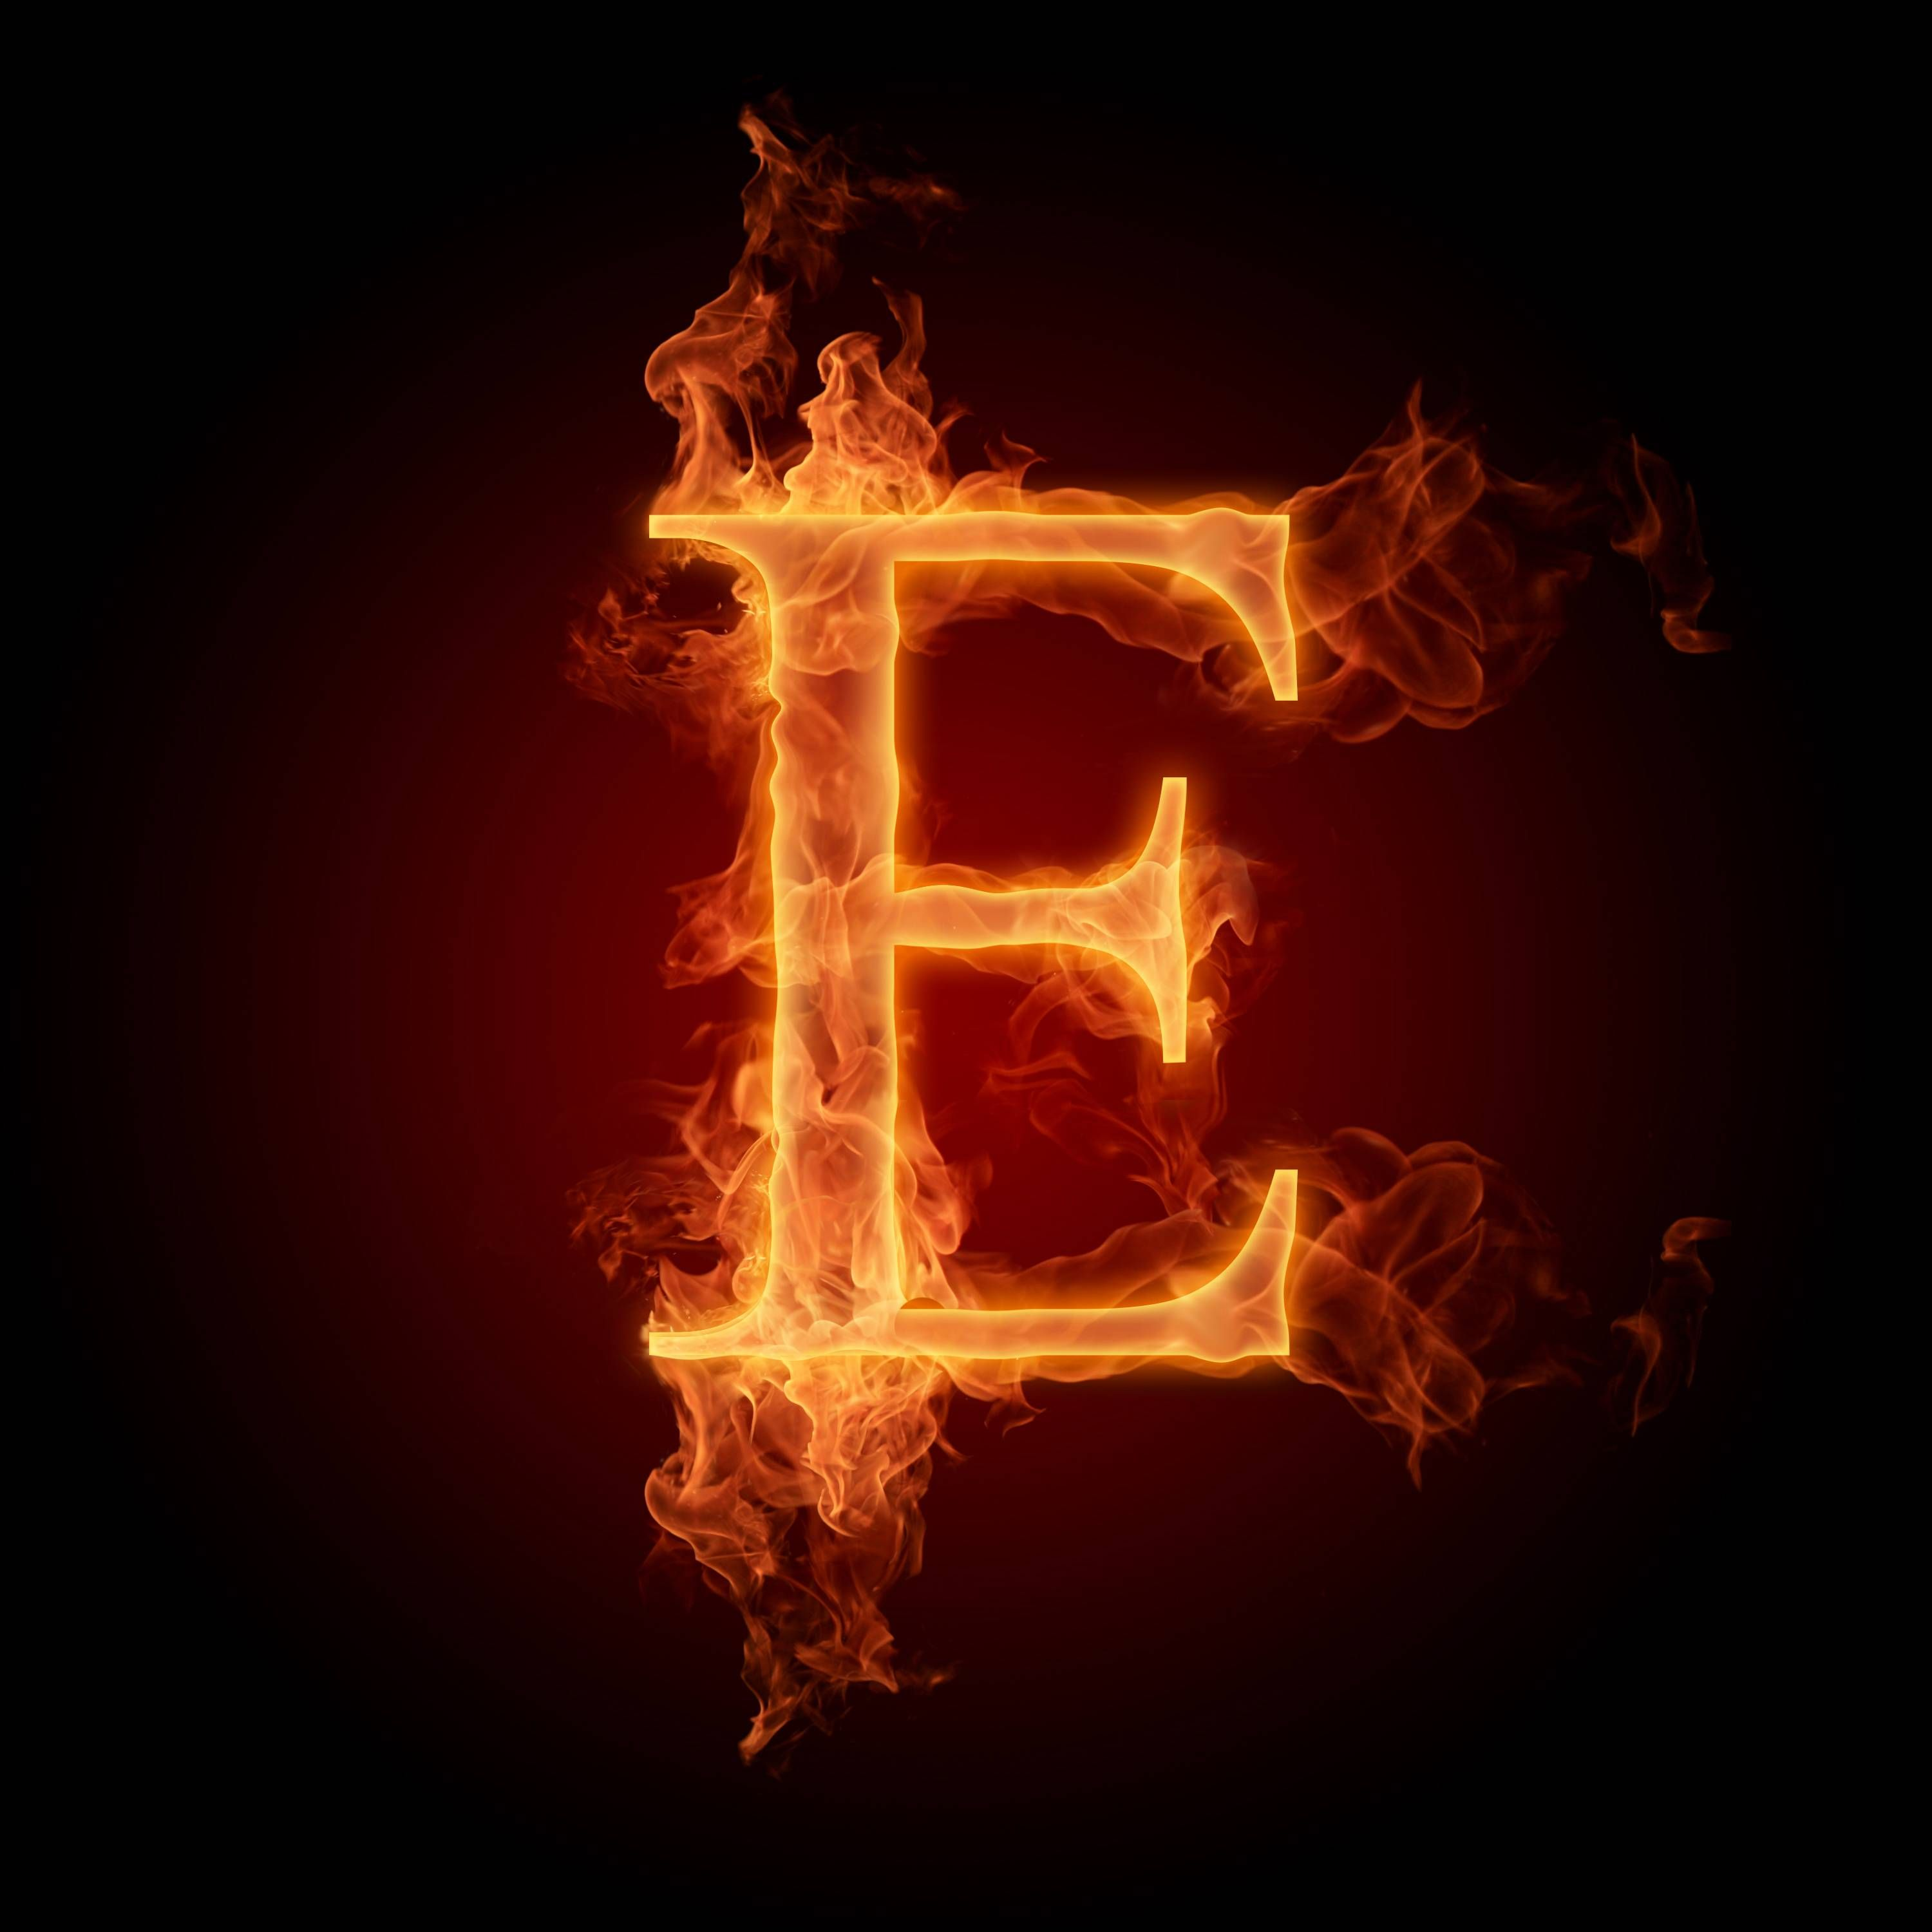 burning letters wallpapers e 270x180 burning fire letters alphabets